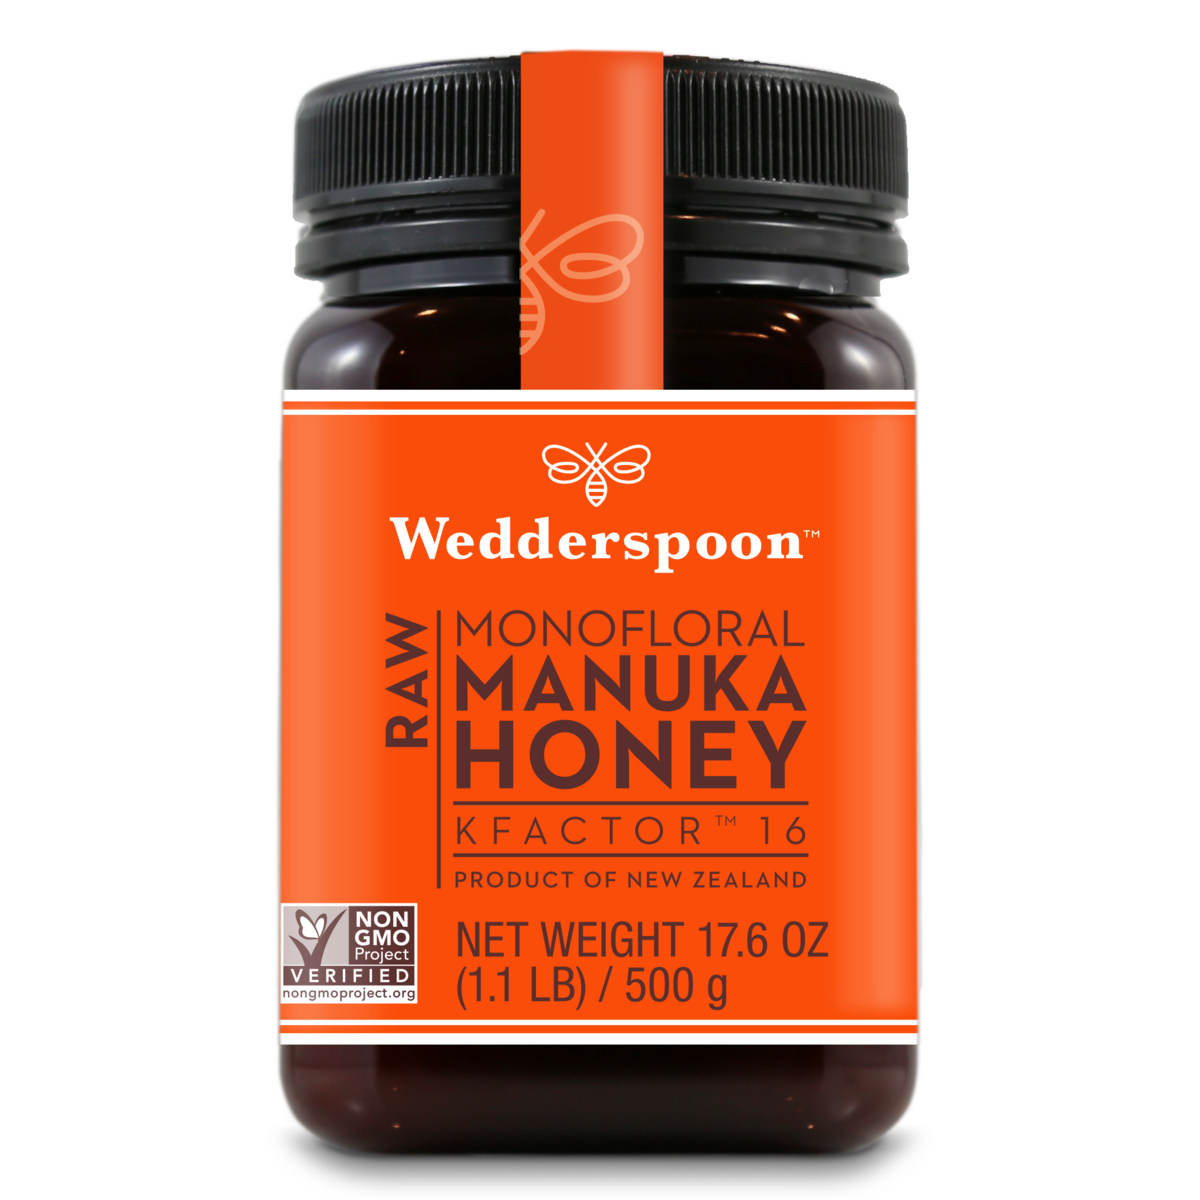 Wedderspoon Raw Monofloral Manuka Honey KFactor 16 - 500 gram - San Diego Honey Company®